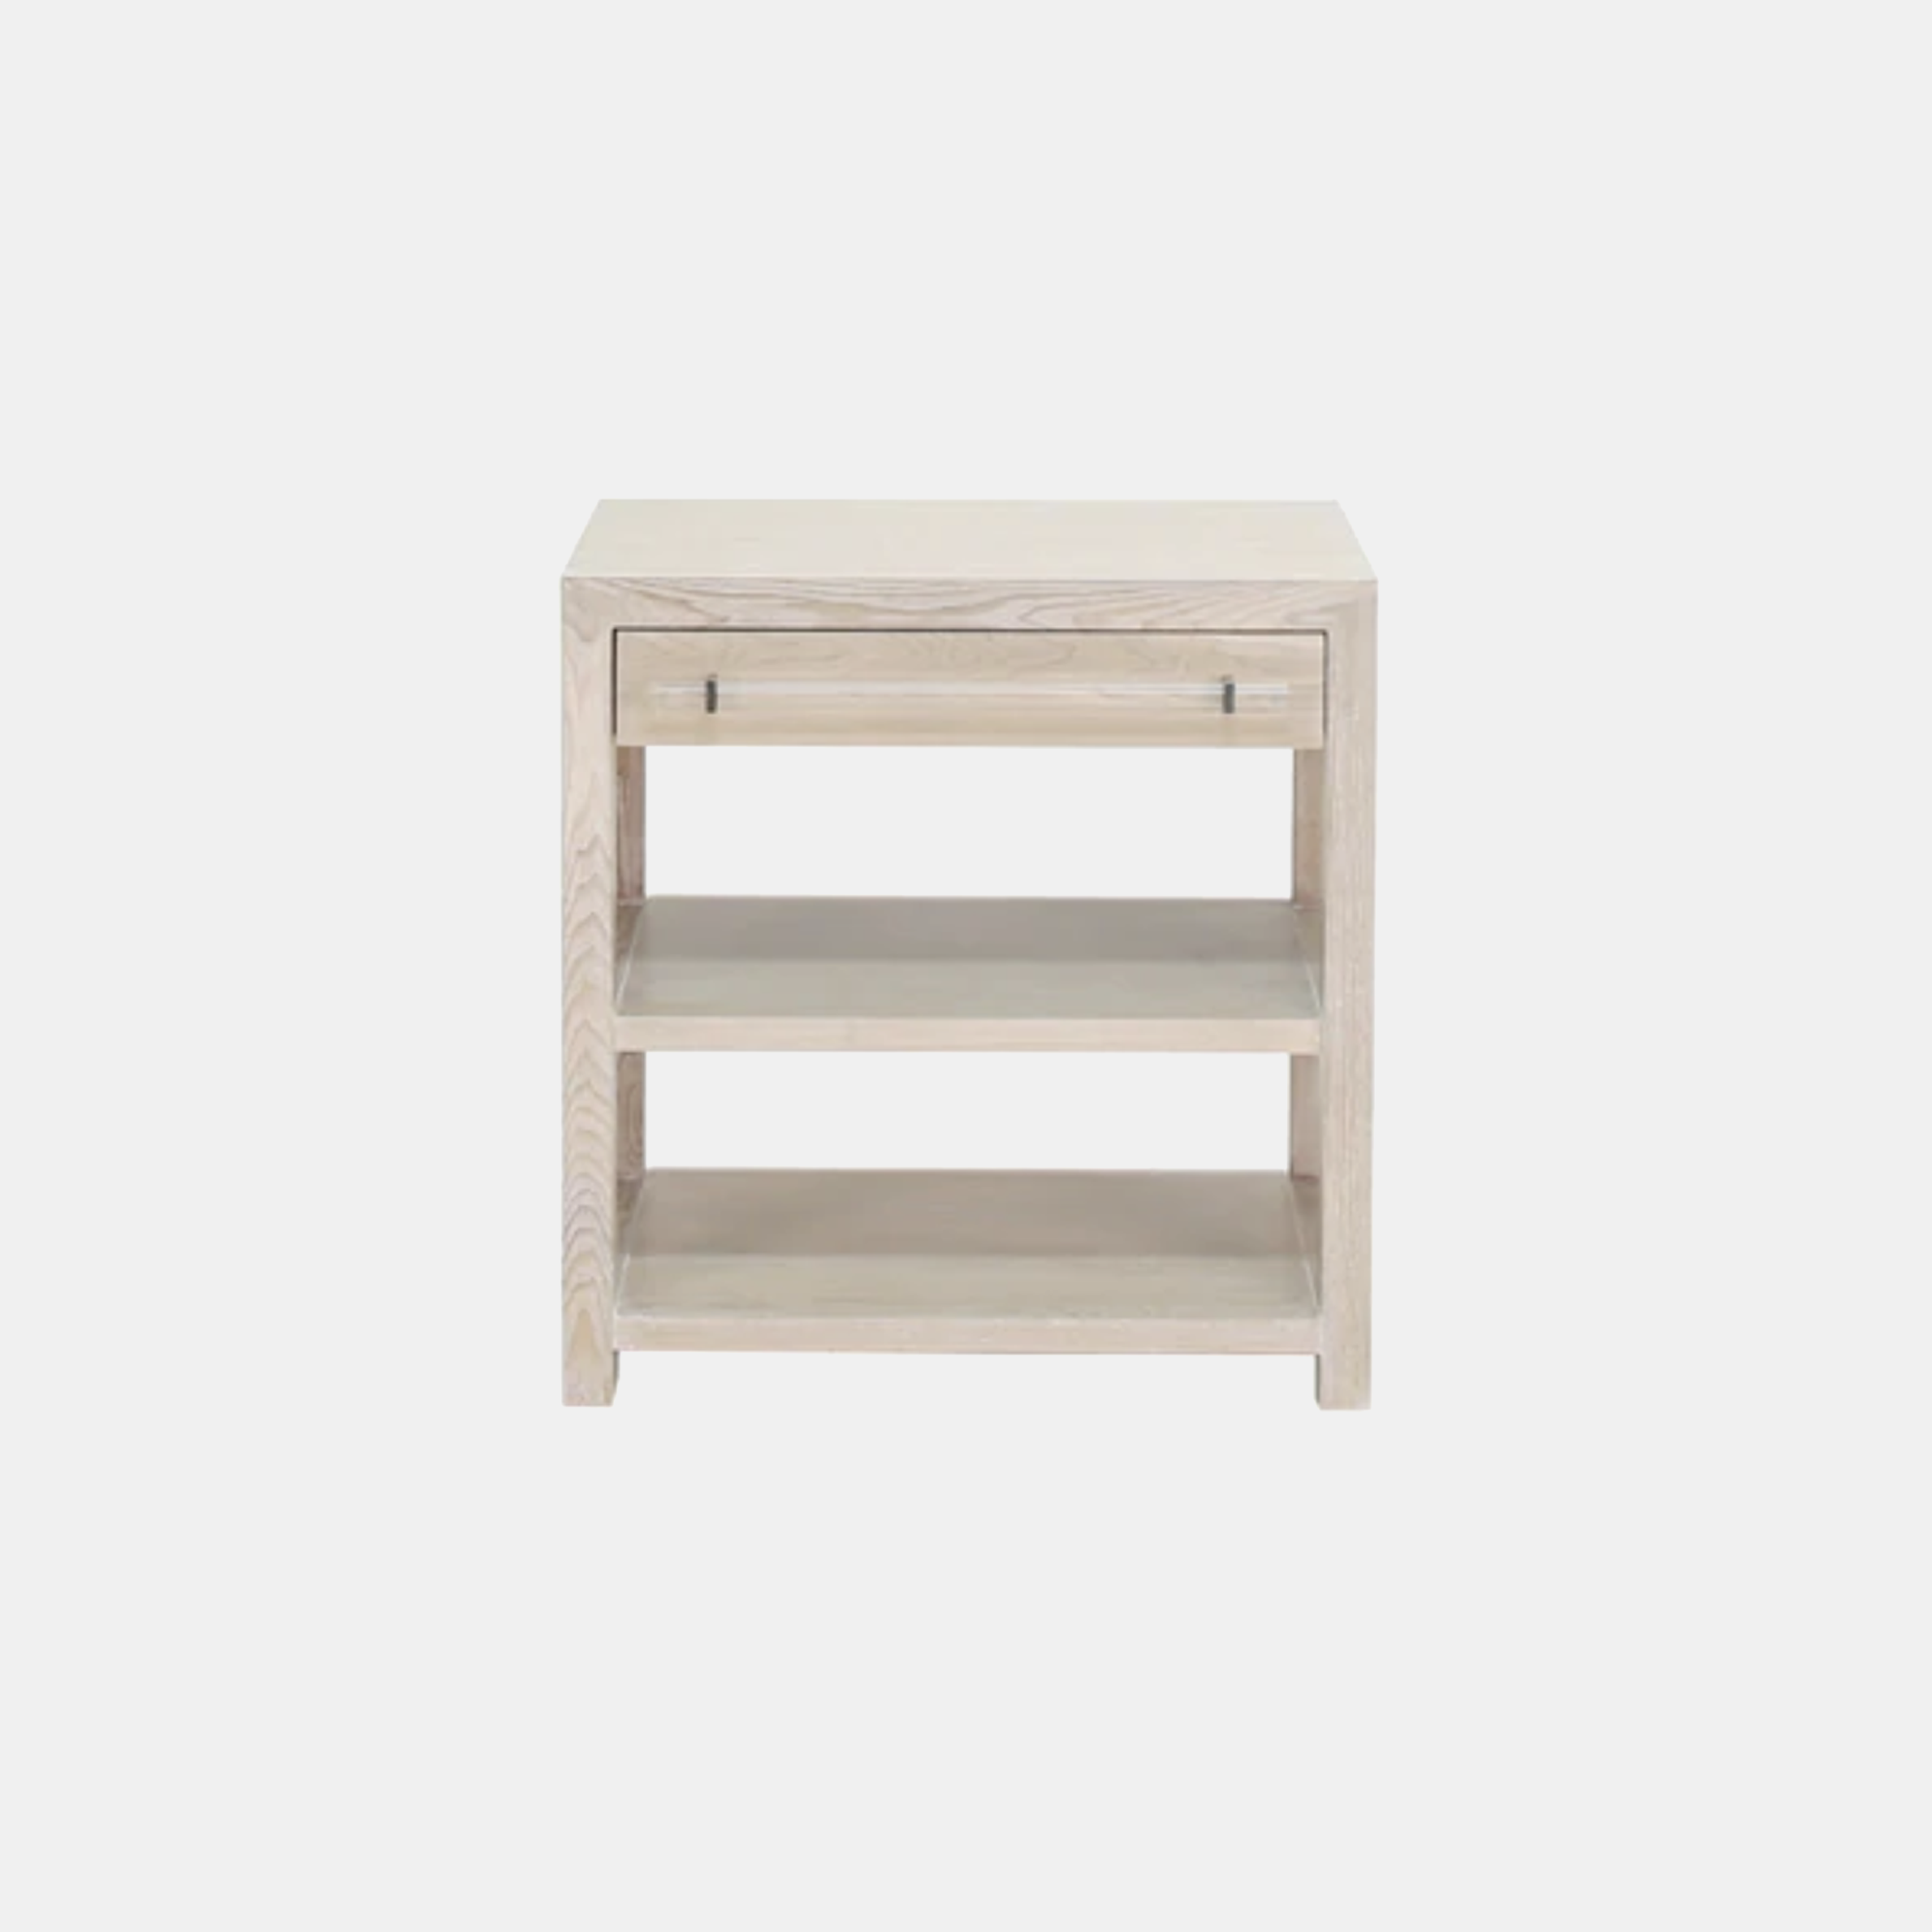 """Garbo Side Table  28""""l x 18""""d x 29""""h Available in cerused oak (shown), gray cerused oak, and white lacquer. SKU6190WAY"""